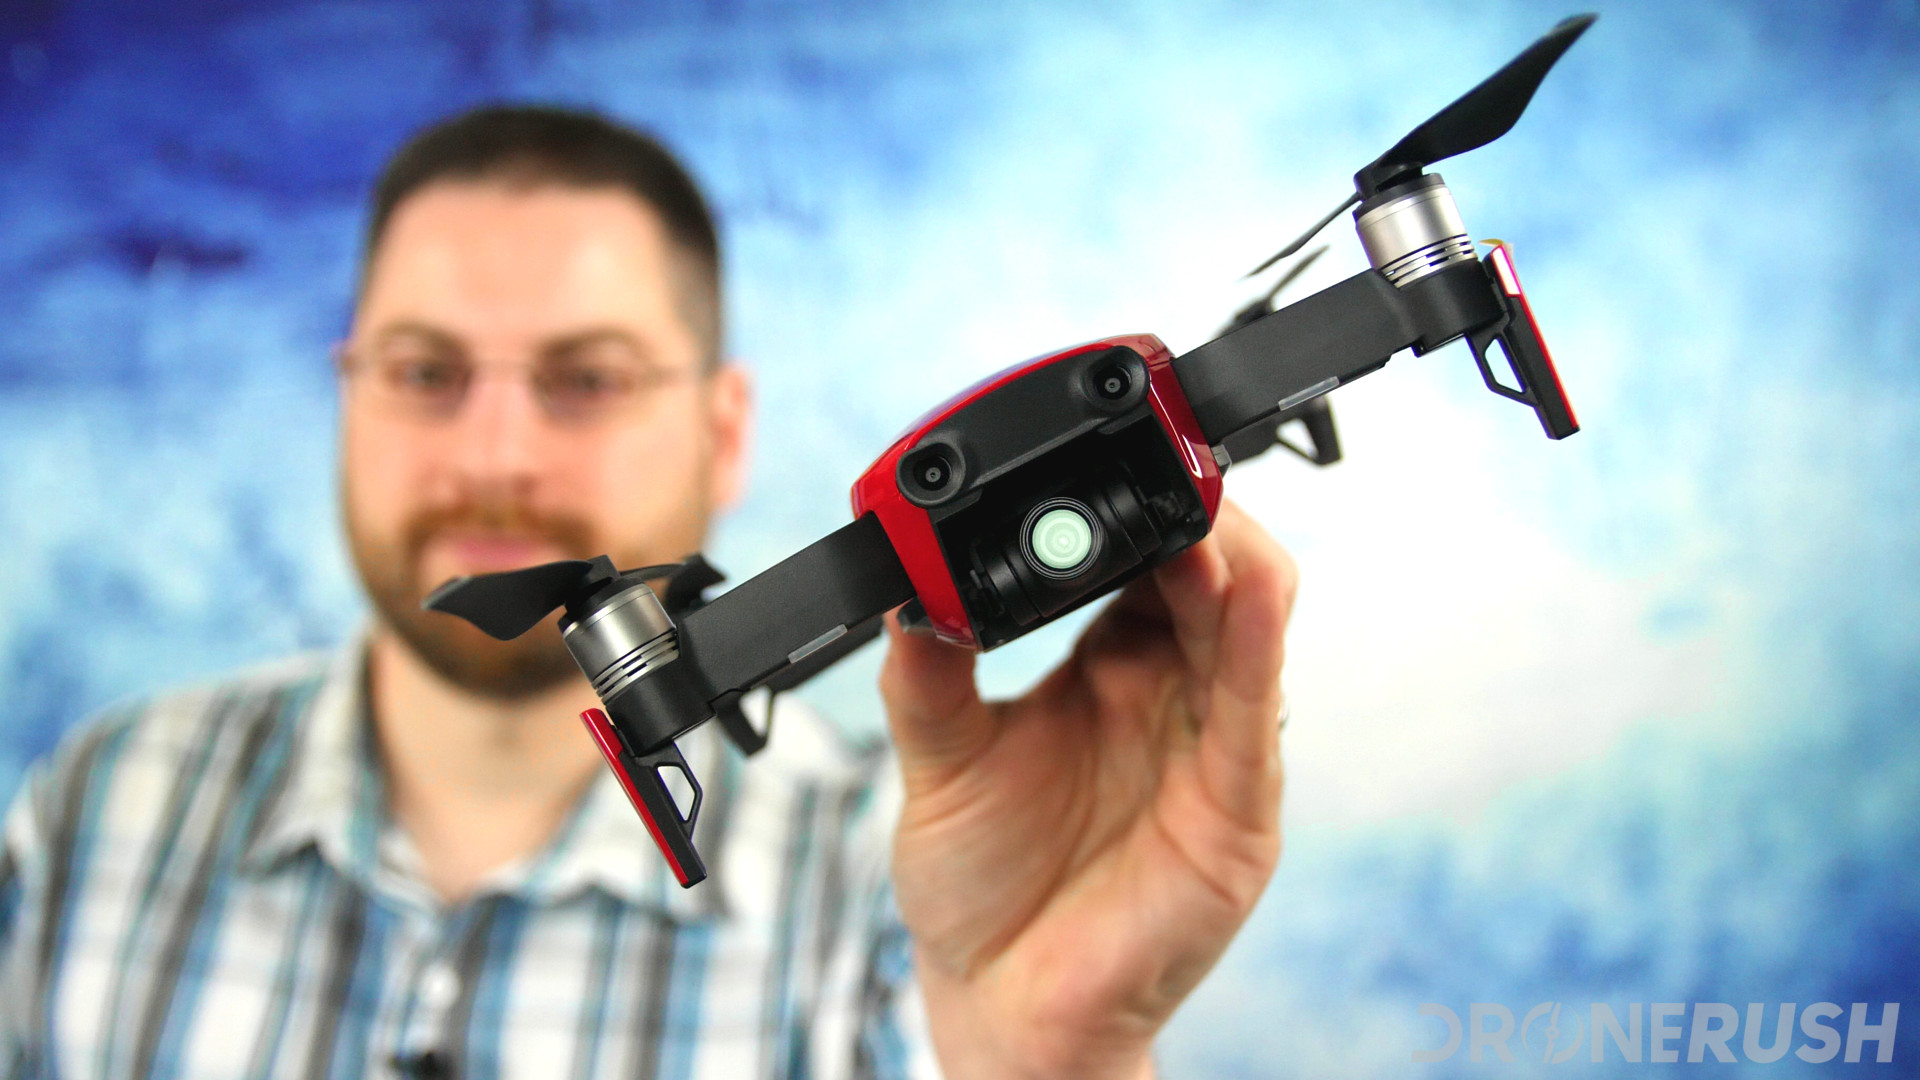 Jonathan Feist holding red DJI Mavic Air camera flare